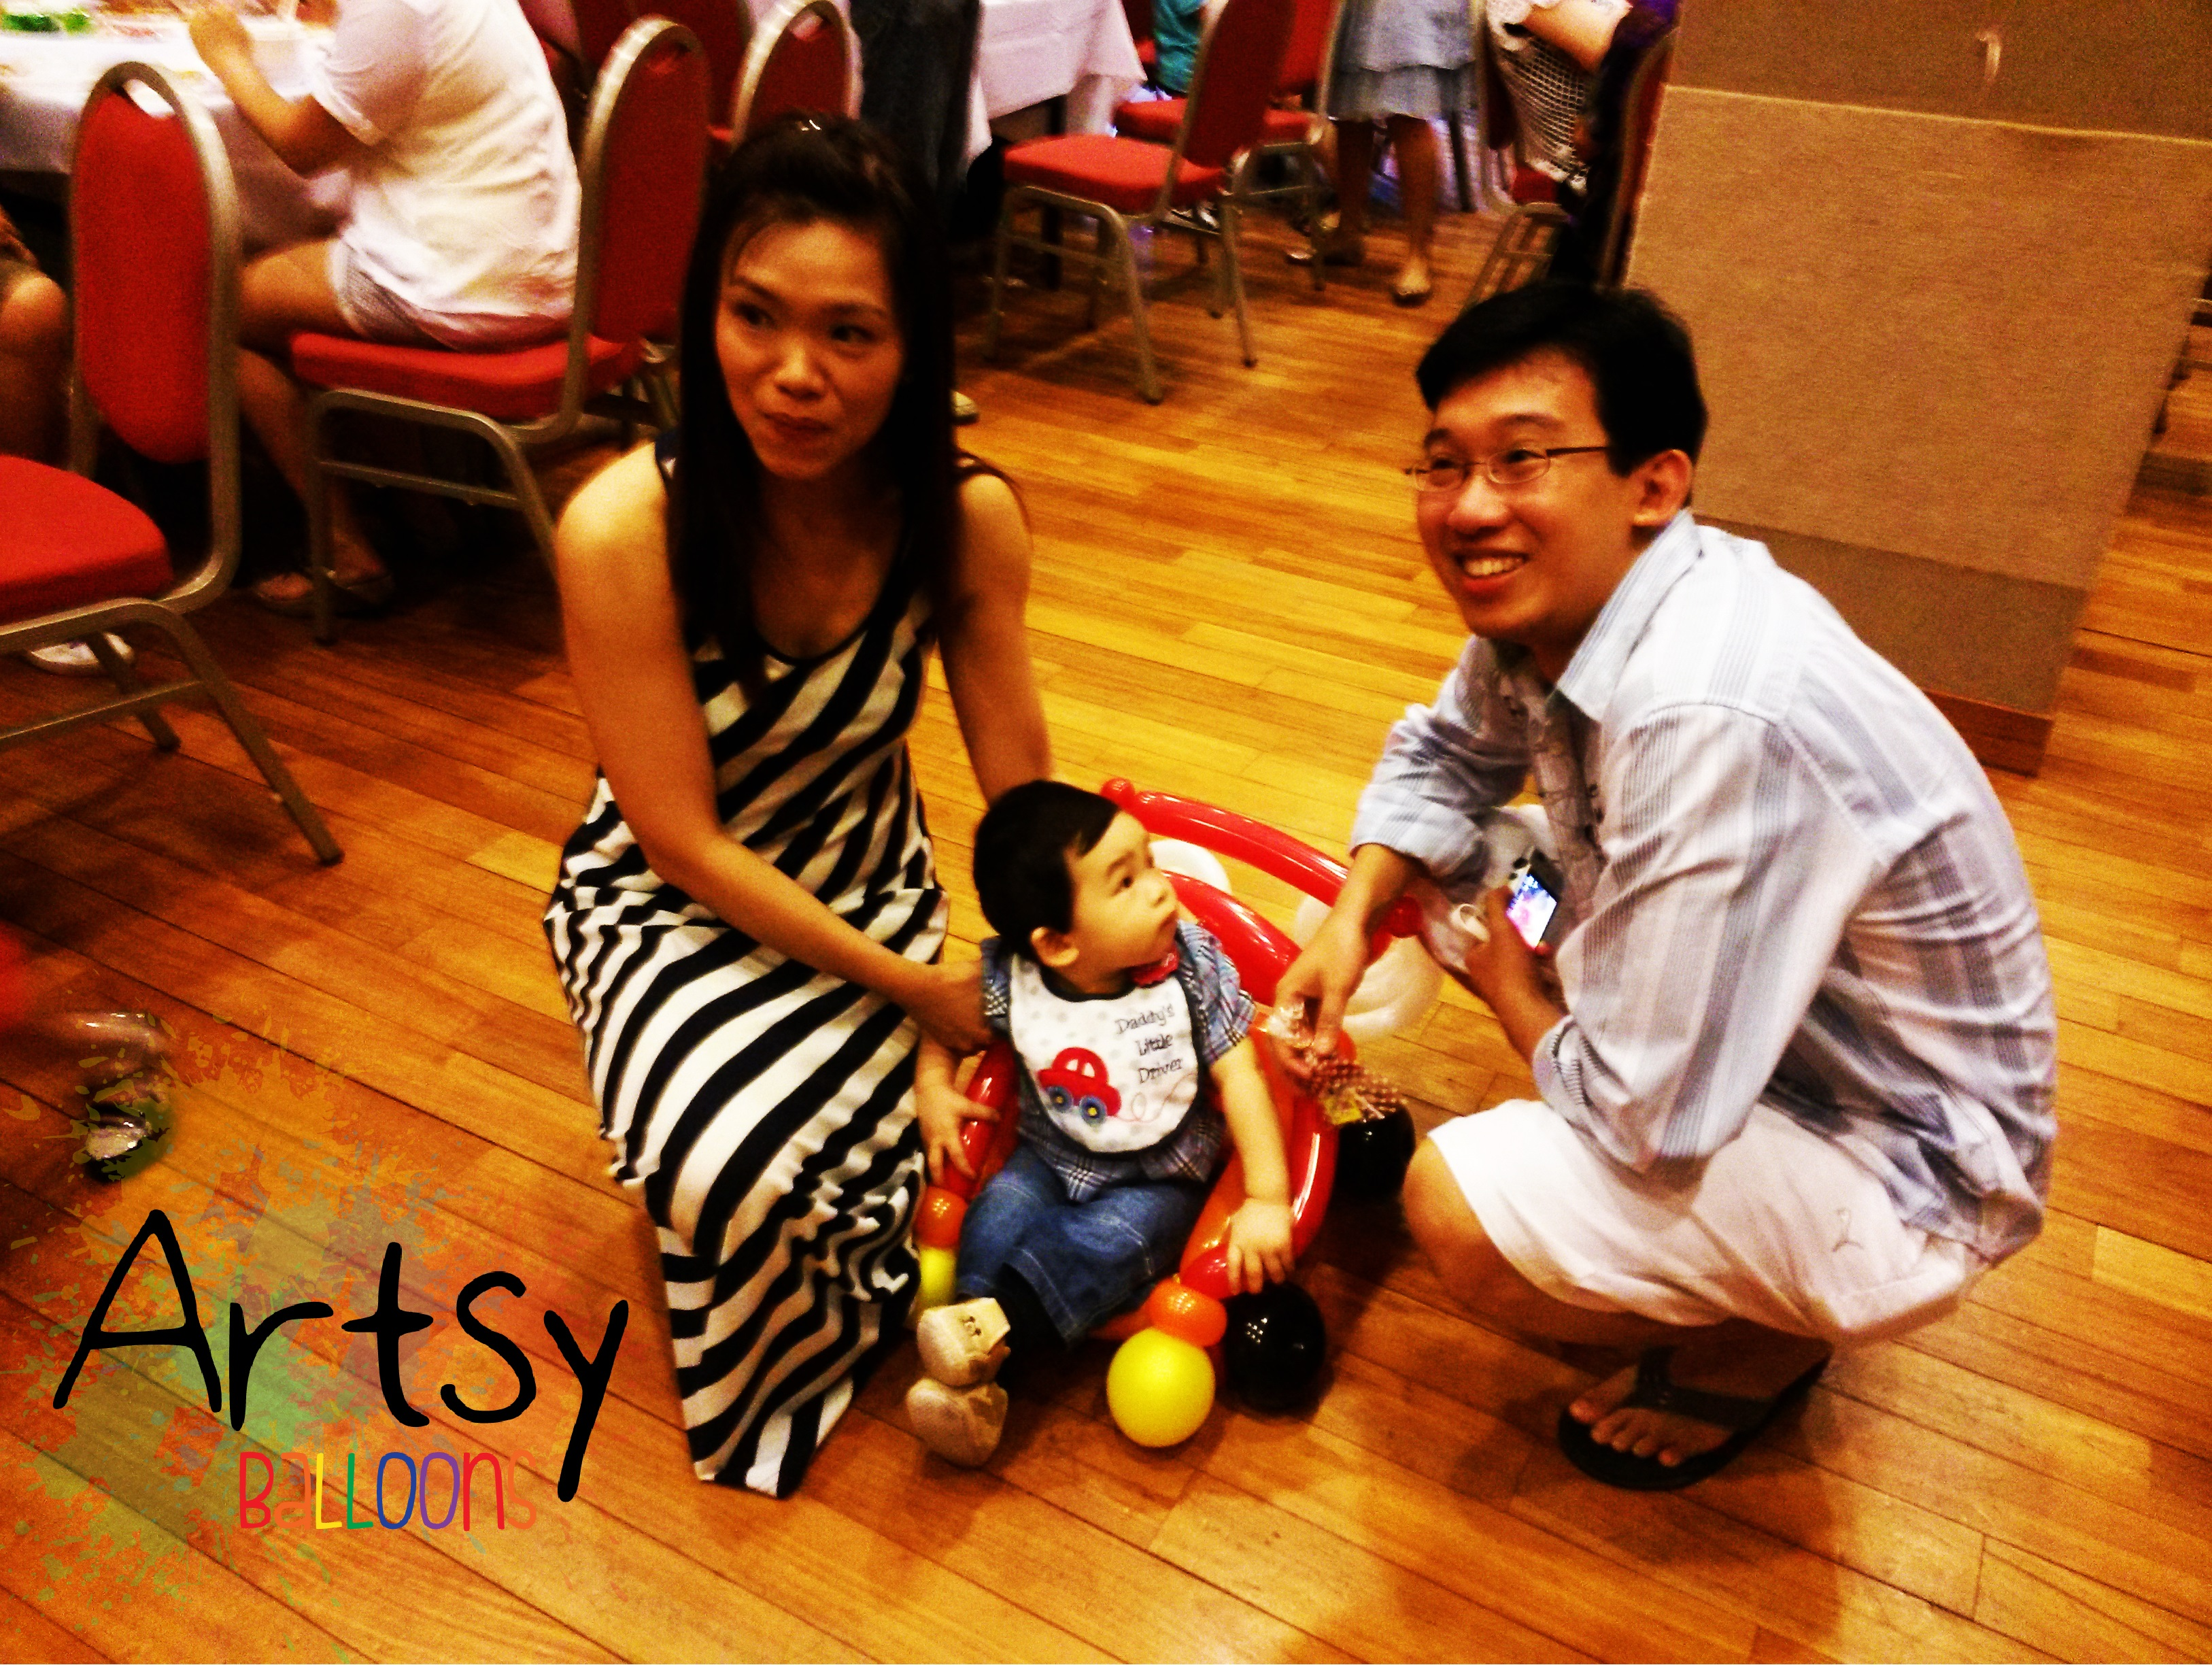 , Birthday parties and more birthday parties!, Singapore Balloon Decoration Services - Balloon Workshop and Balloon Sculpting